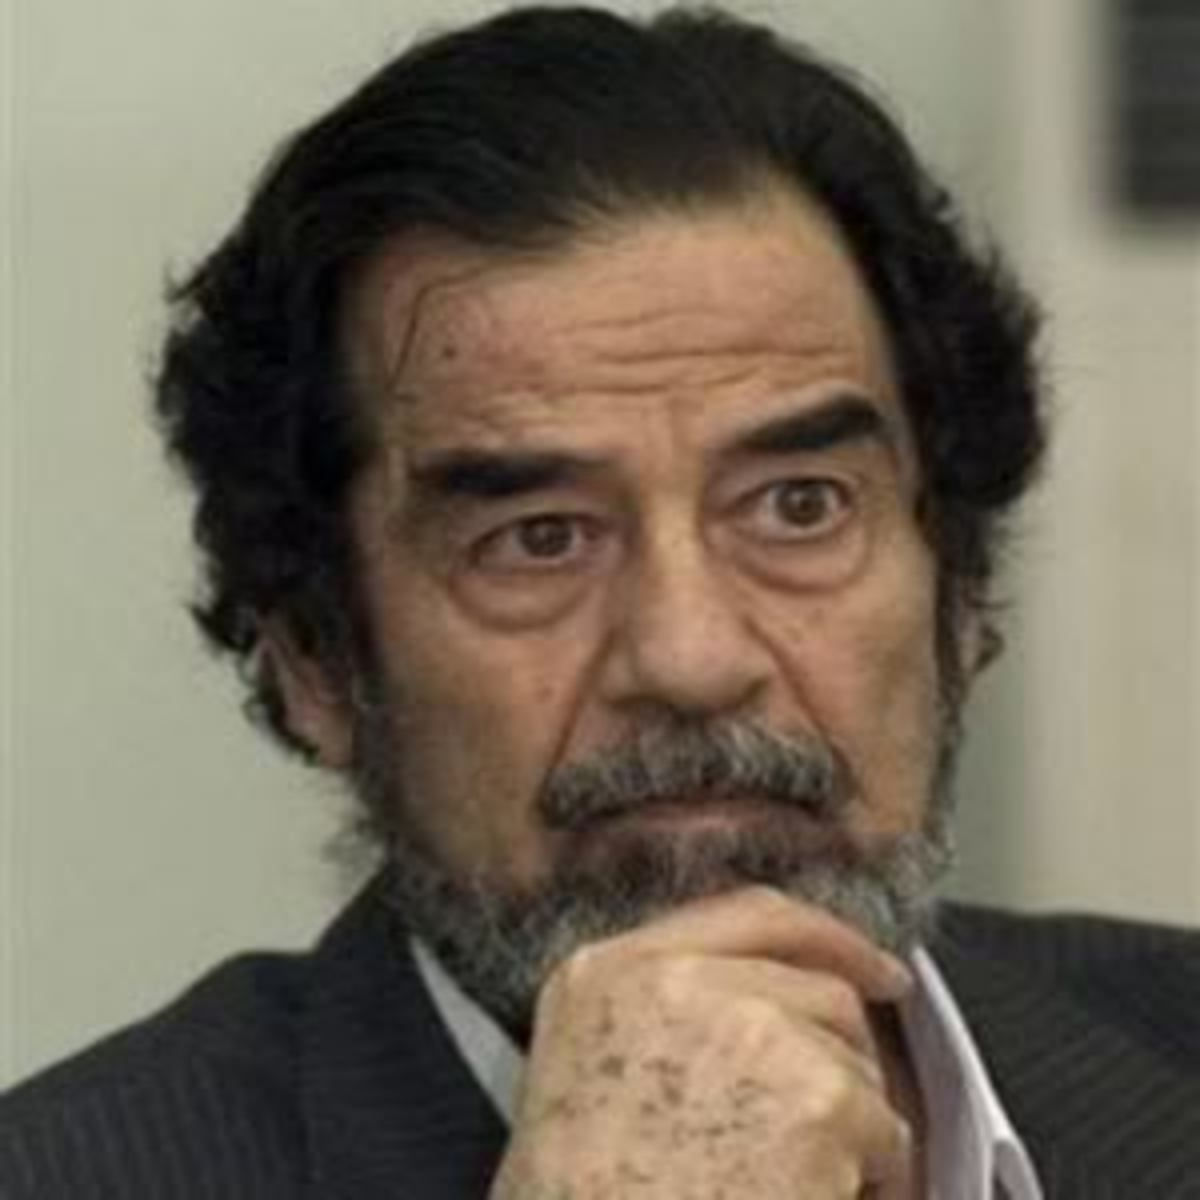 Dictator Saddam overthrown by Bush and Blair which led to the quagmire Iraq is today